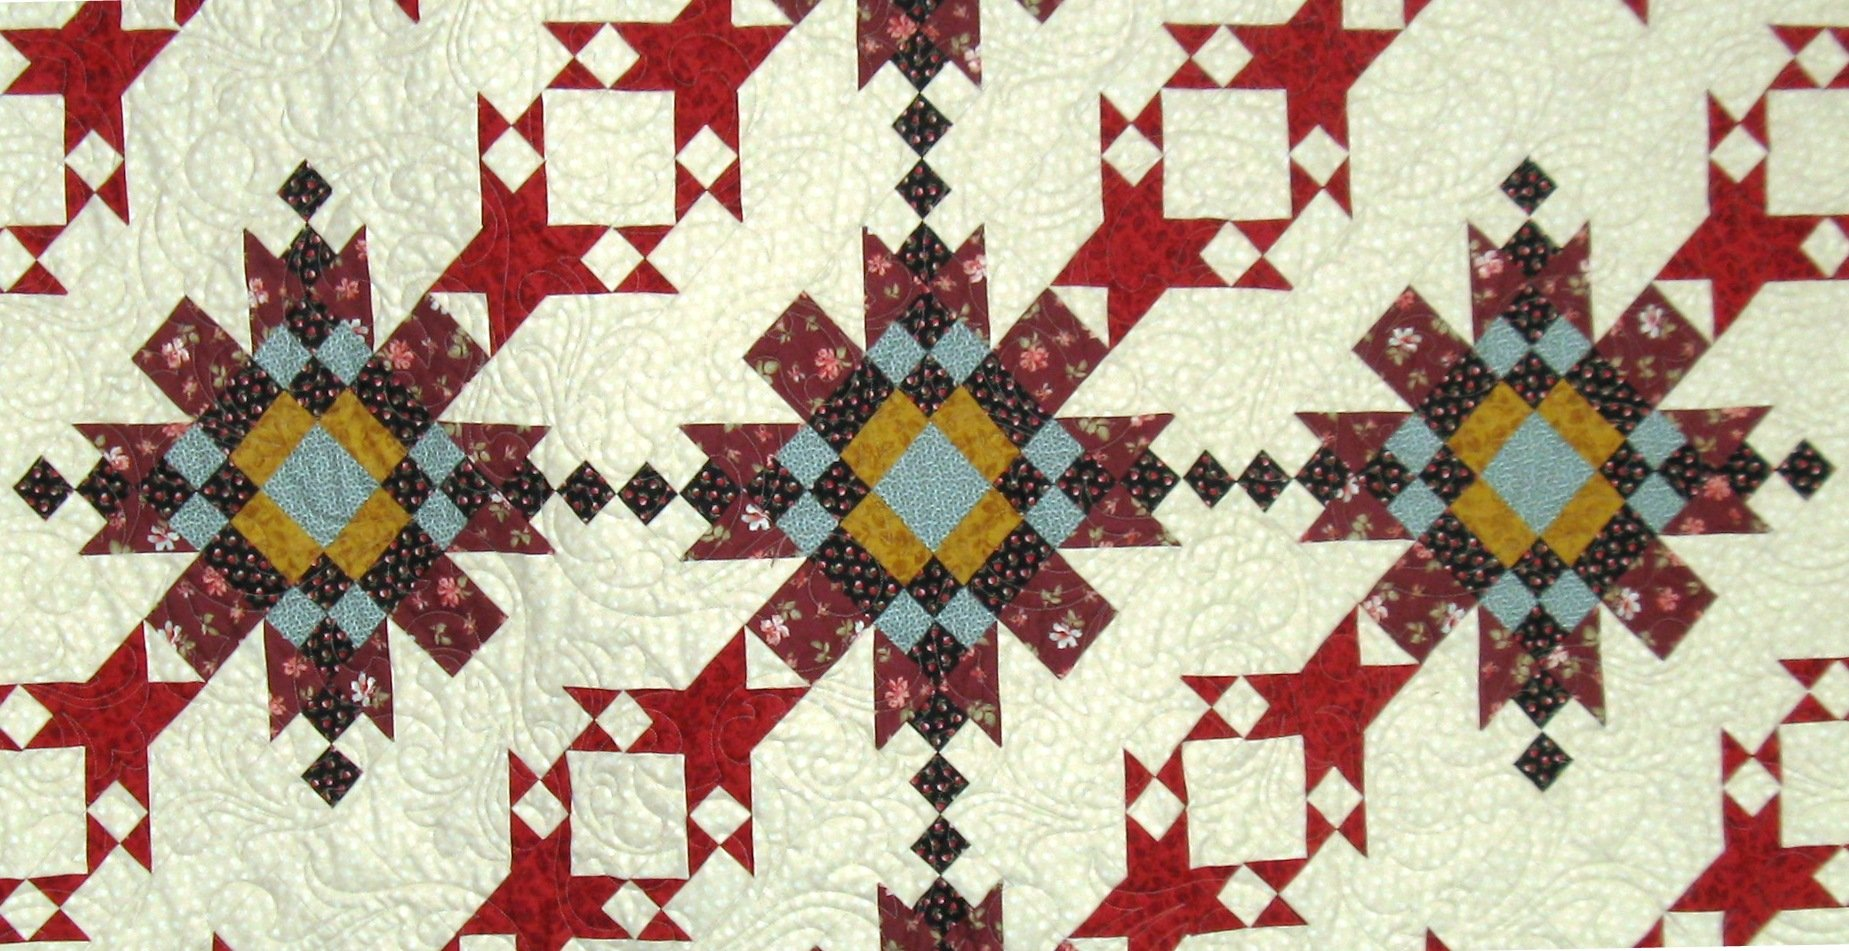 Anna s Sewing Center | Fairview Park, Ohio | Machine Dealer and ... : quilt shops in cleveland ohio - Adamdwight.com